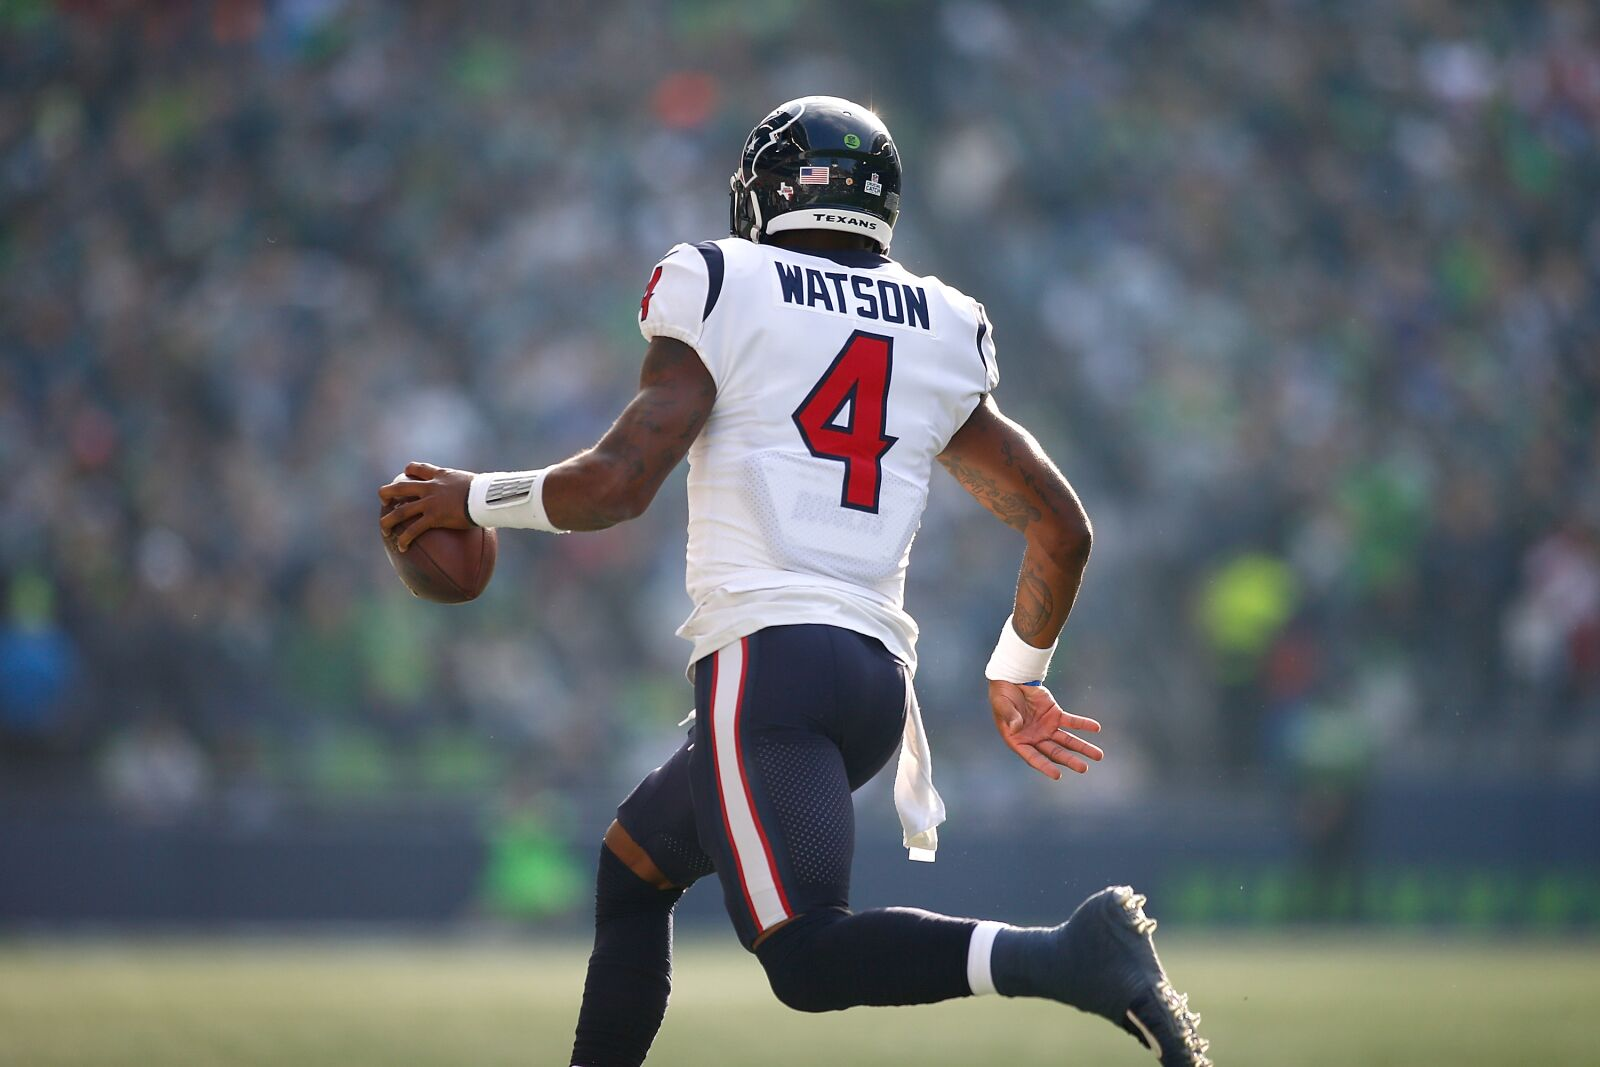 SEATTLE, WA - OCTOBER 29: DeShaun Watson #4 of the Houston Texans runs the ball against the Seattle Seahawks at CenturyLink Field on October 29, 2017 in Seattle, Washington. (Photo by Jonathan Ferrey/Getty Images)